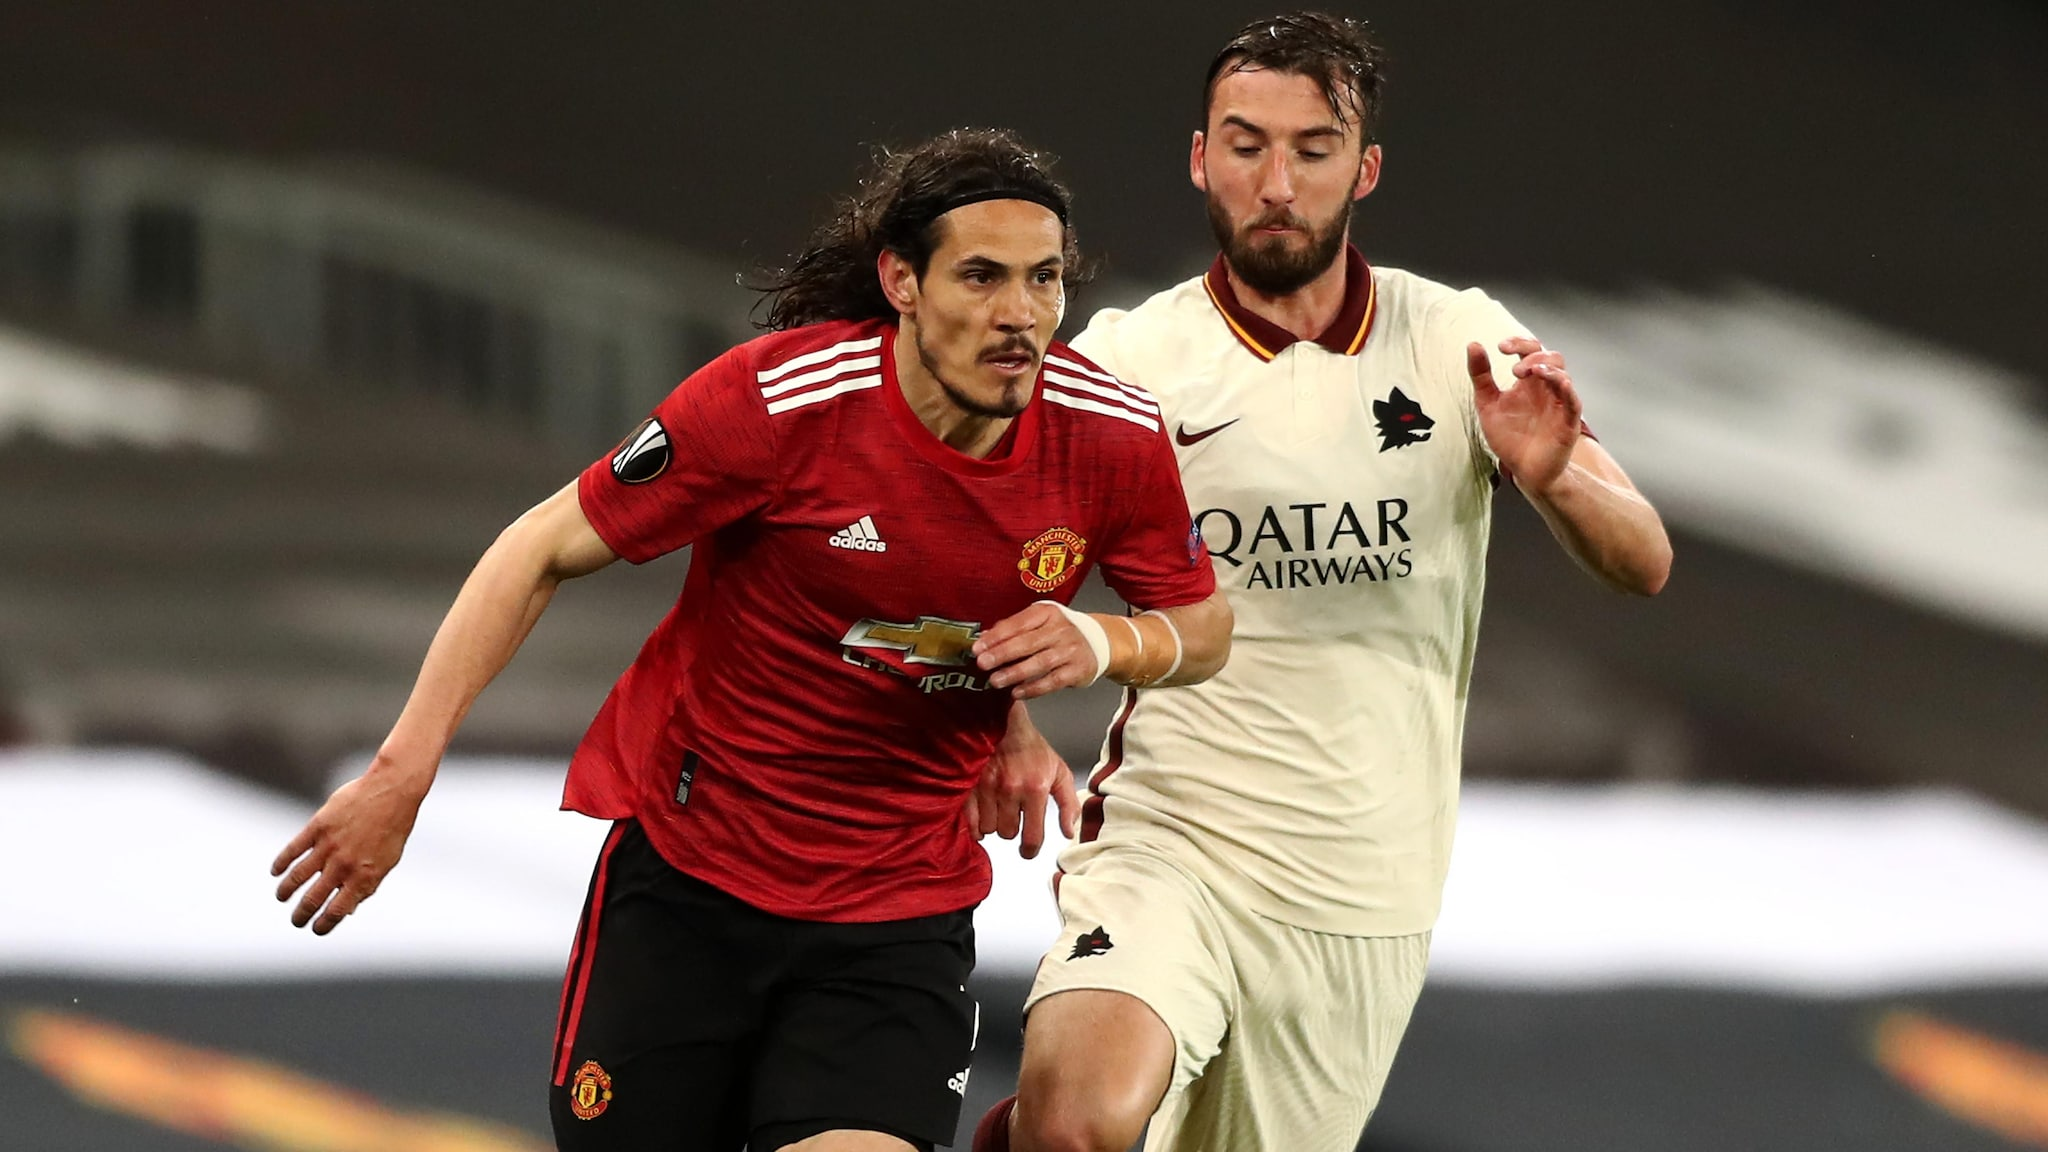 Roma-Man. United | Roma vs Manchester United: UEFA Europa League  background, form guide, previous meetings | UEFA Europa League | UEFA.com